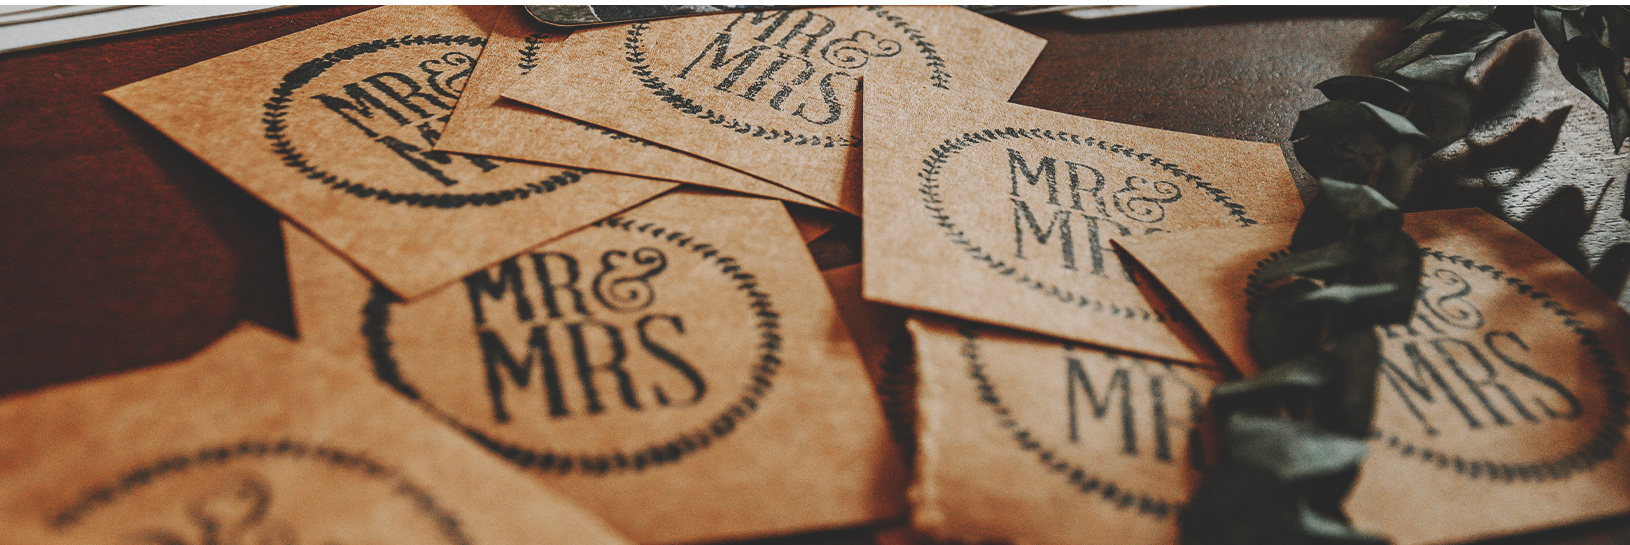 Image of recyclable wedding invitations